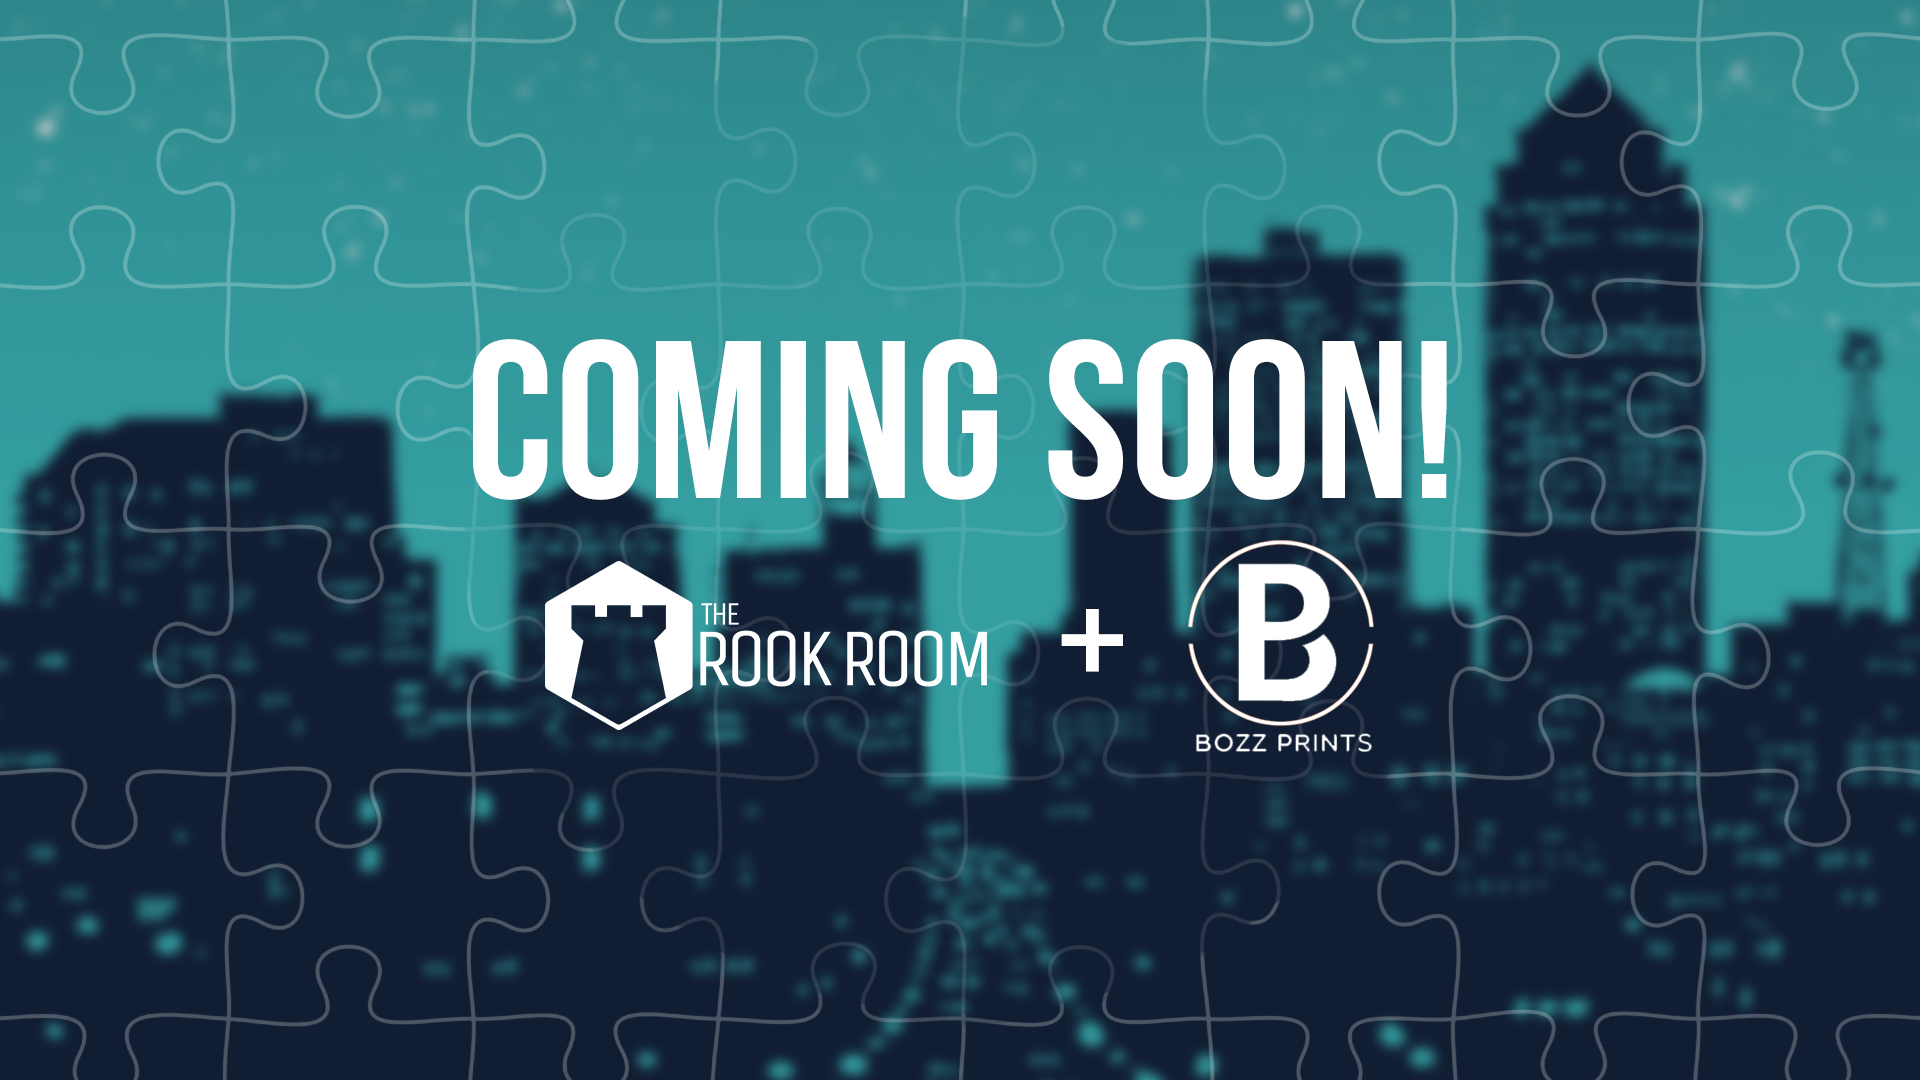 The Rook Room and Bozz Prints Des Moines and Iowa Jigsaw Puzzles Coming Soon Header Image